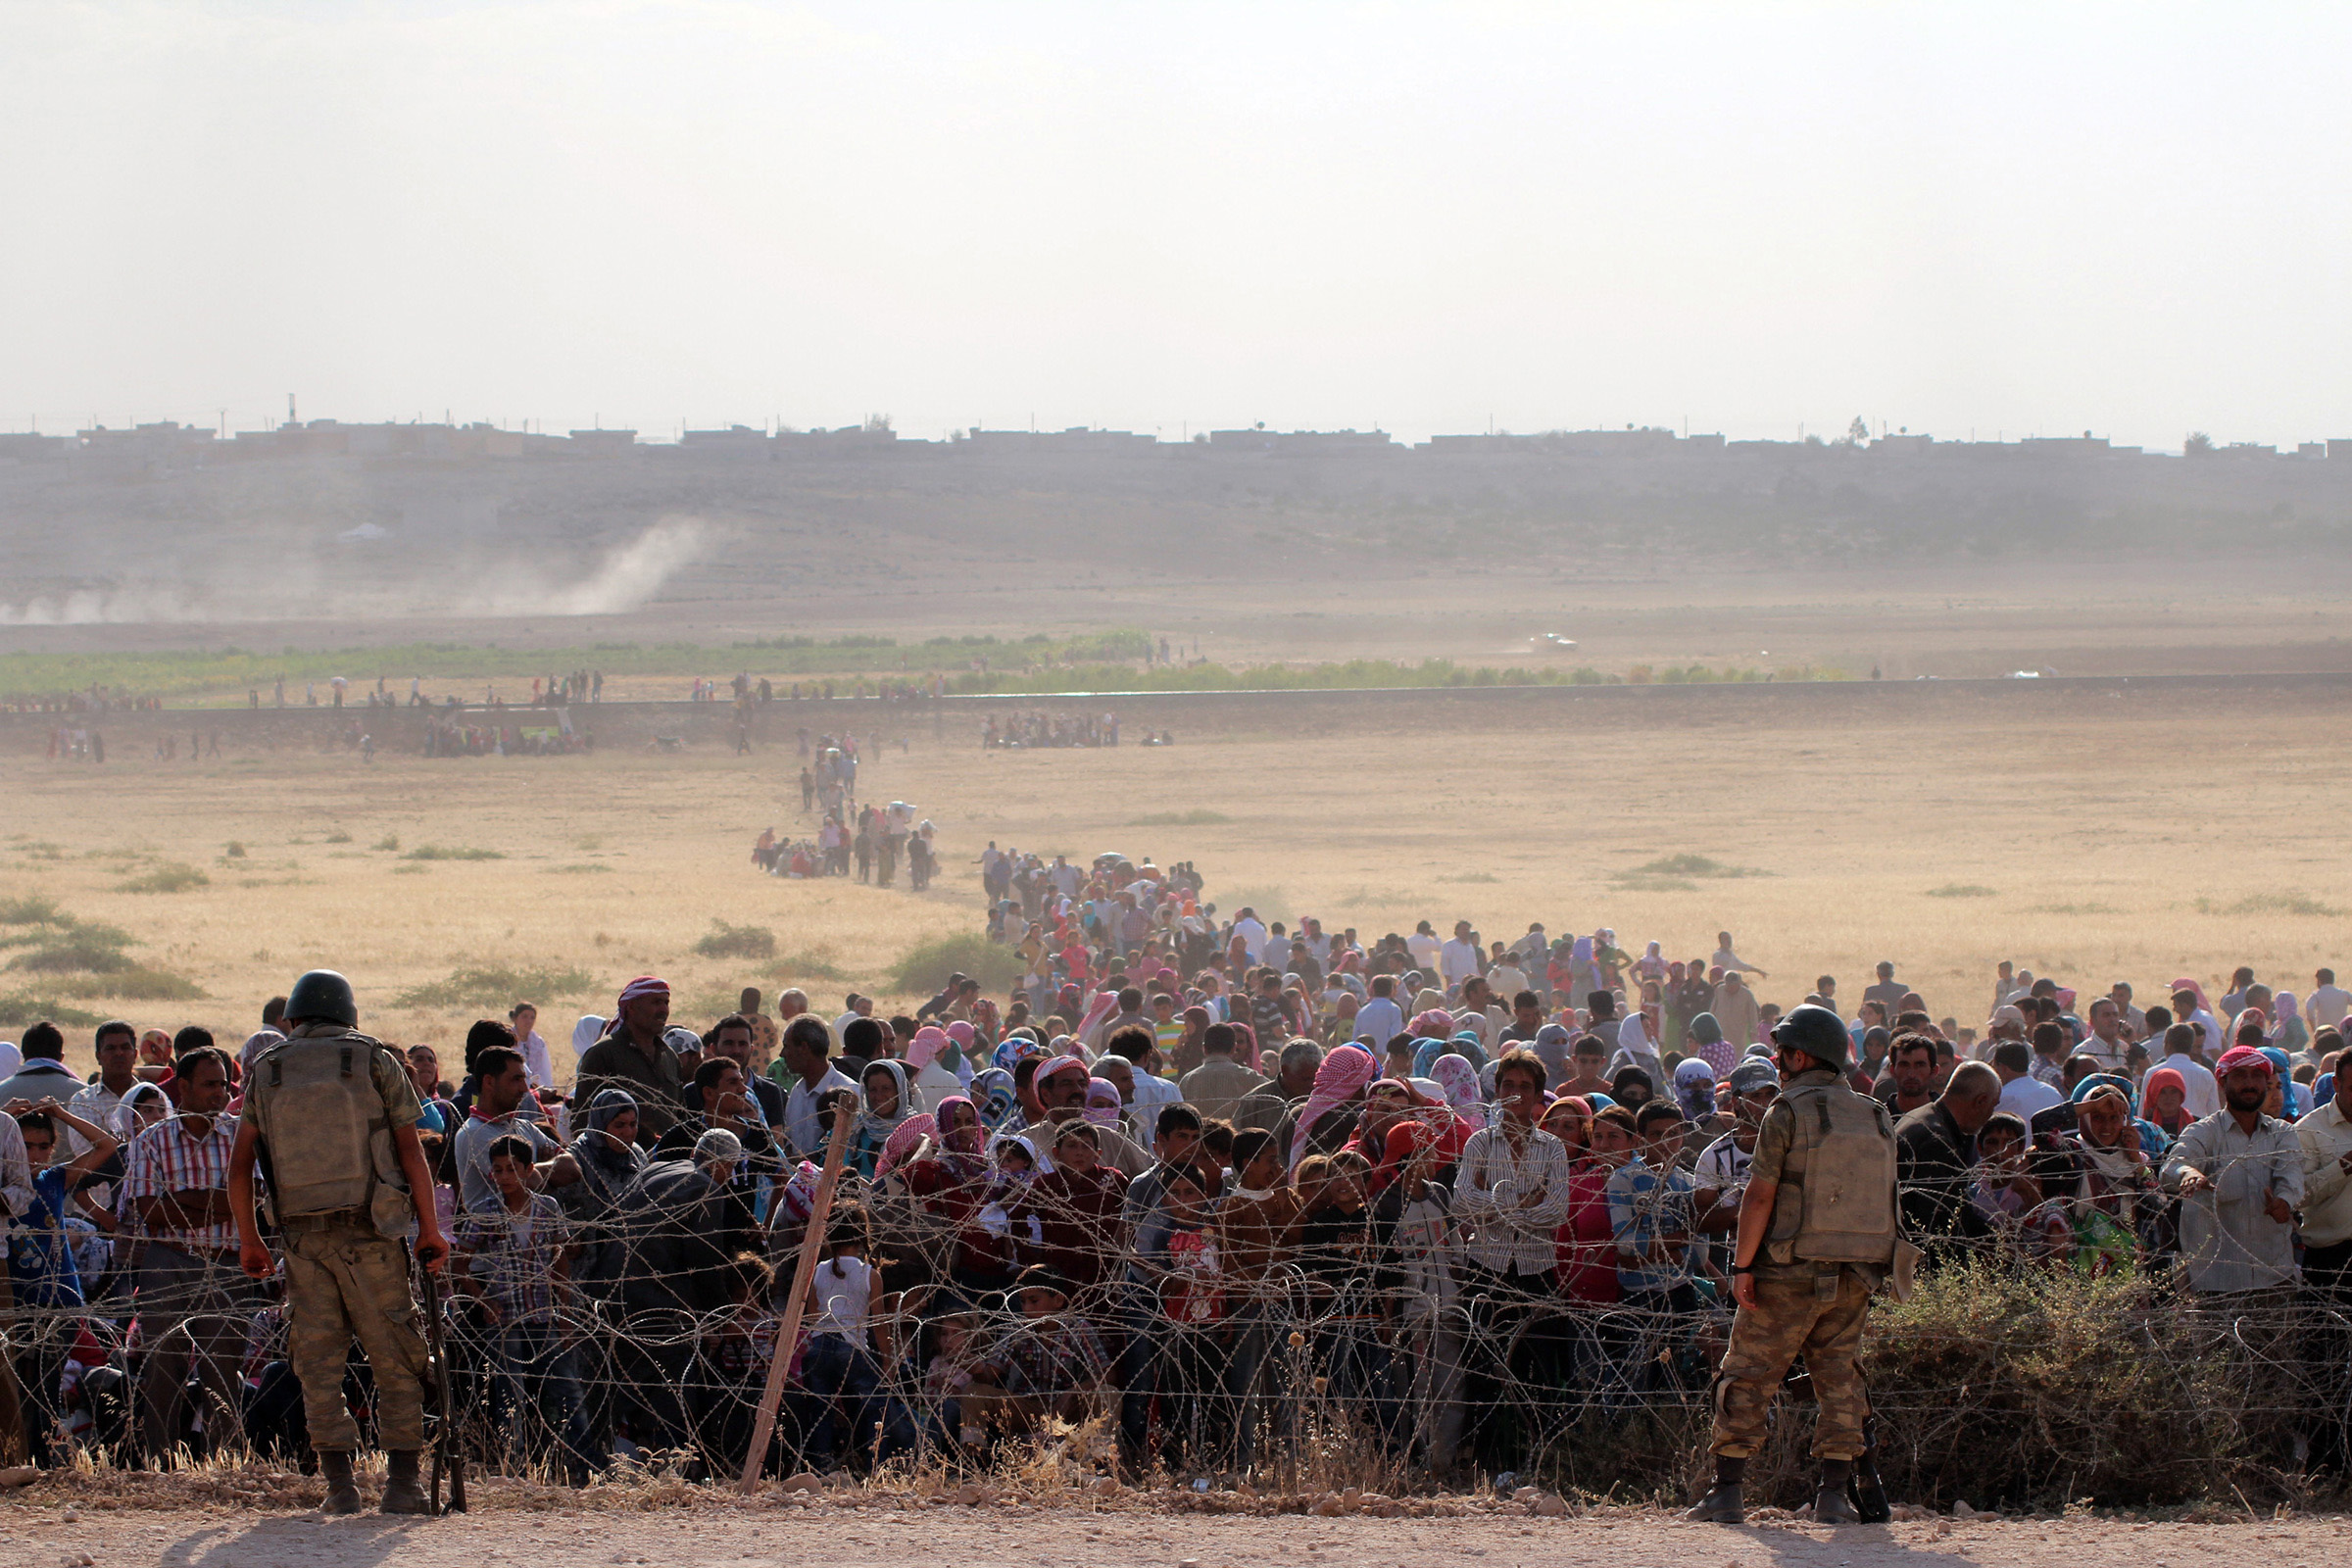 Syrians fleeing from clashes between the Islamic State of Iraq and Syria (ISIS) militants wait at the Turkish-Syrian border to cross into Turkey on Sept. 18, 2014.